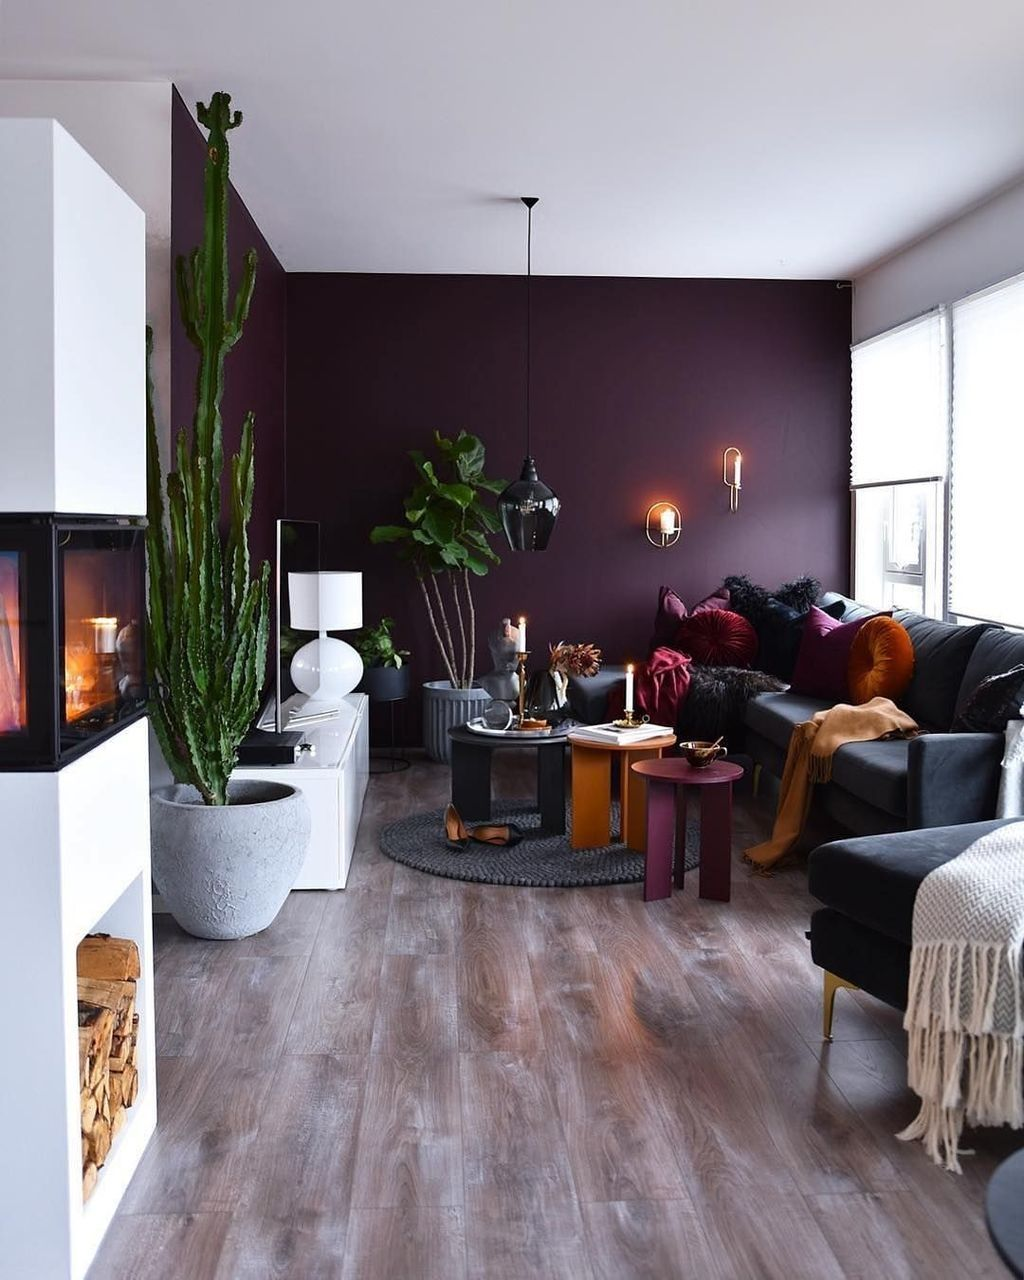 Forest Green Accent Wall With Purple: 20+ Luxurious DIY Accent Wall Interior Ideas For